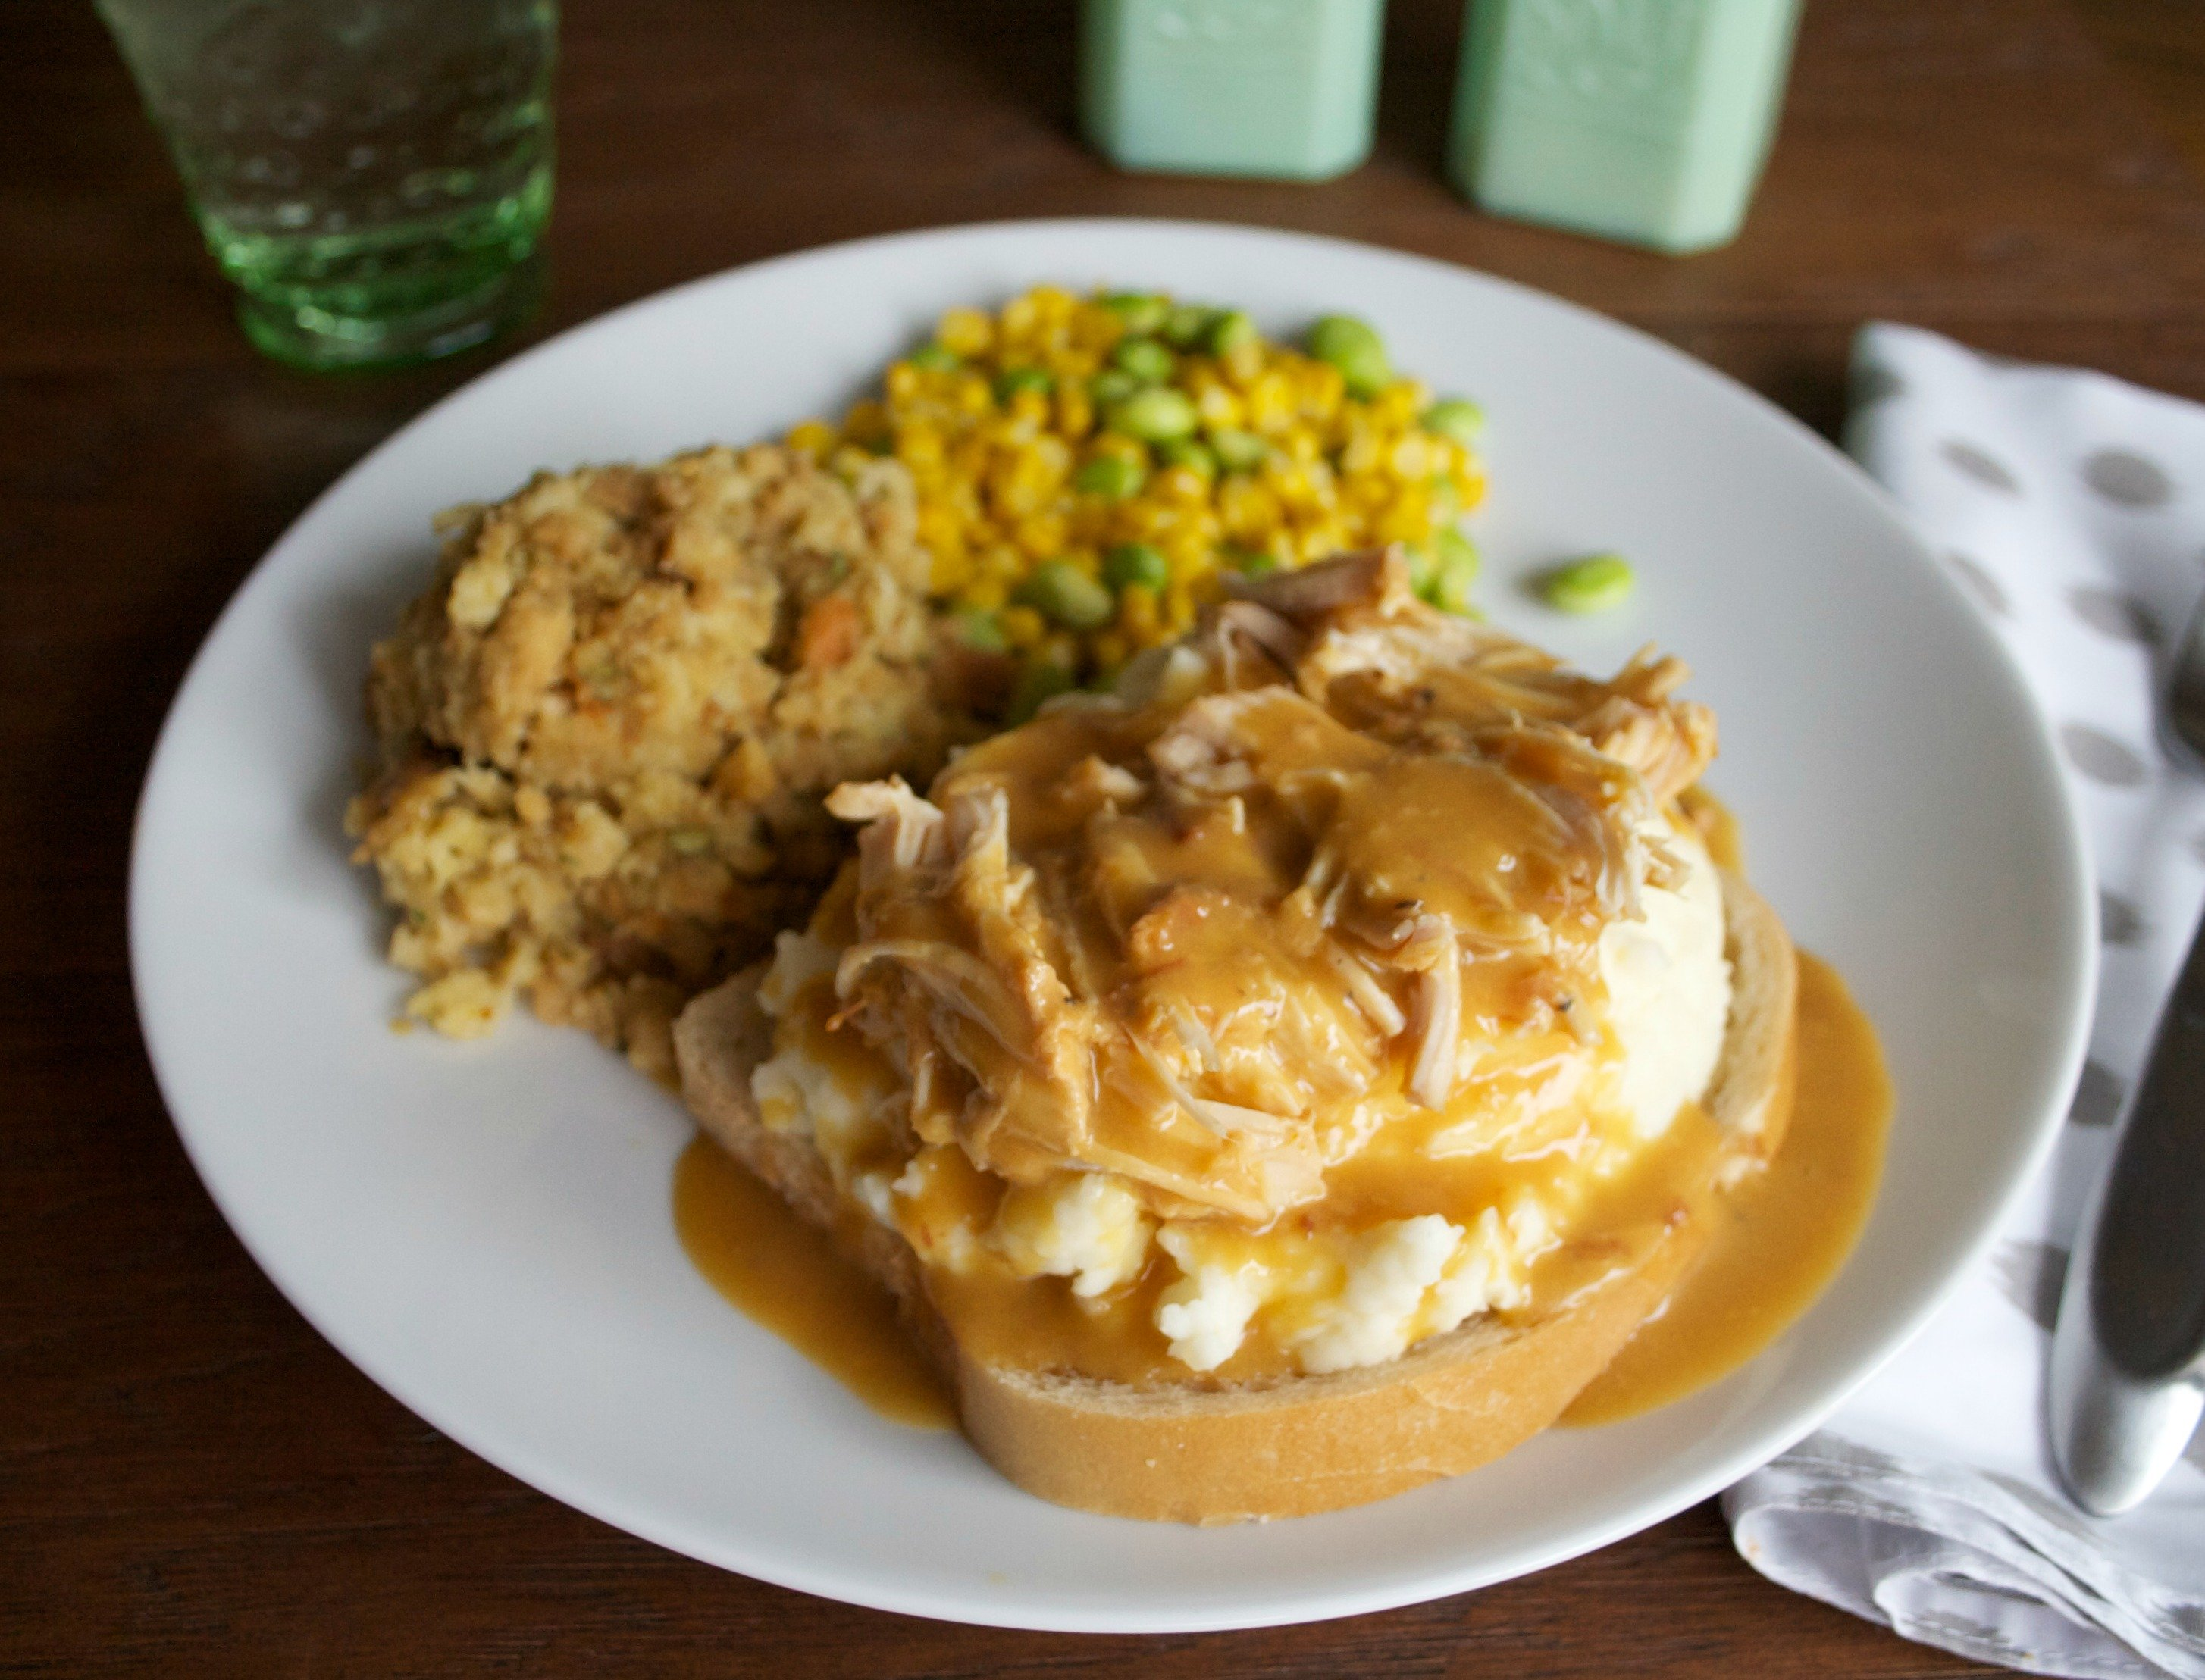 Slow Cooker Chicken And Gravy This Recipe For Slow Cooker Chicken And ...